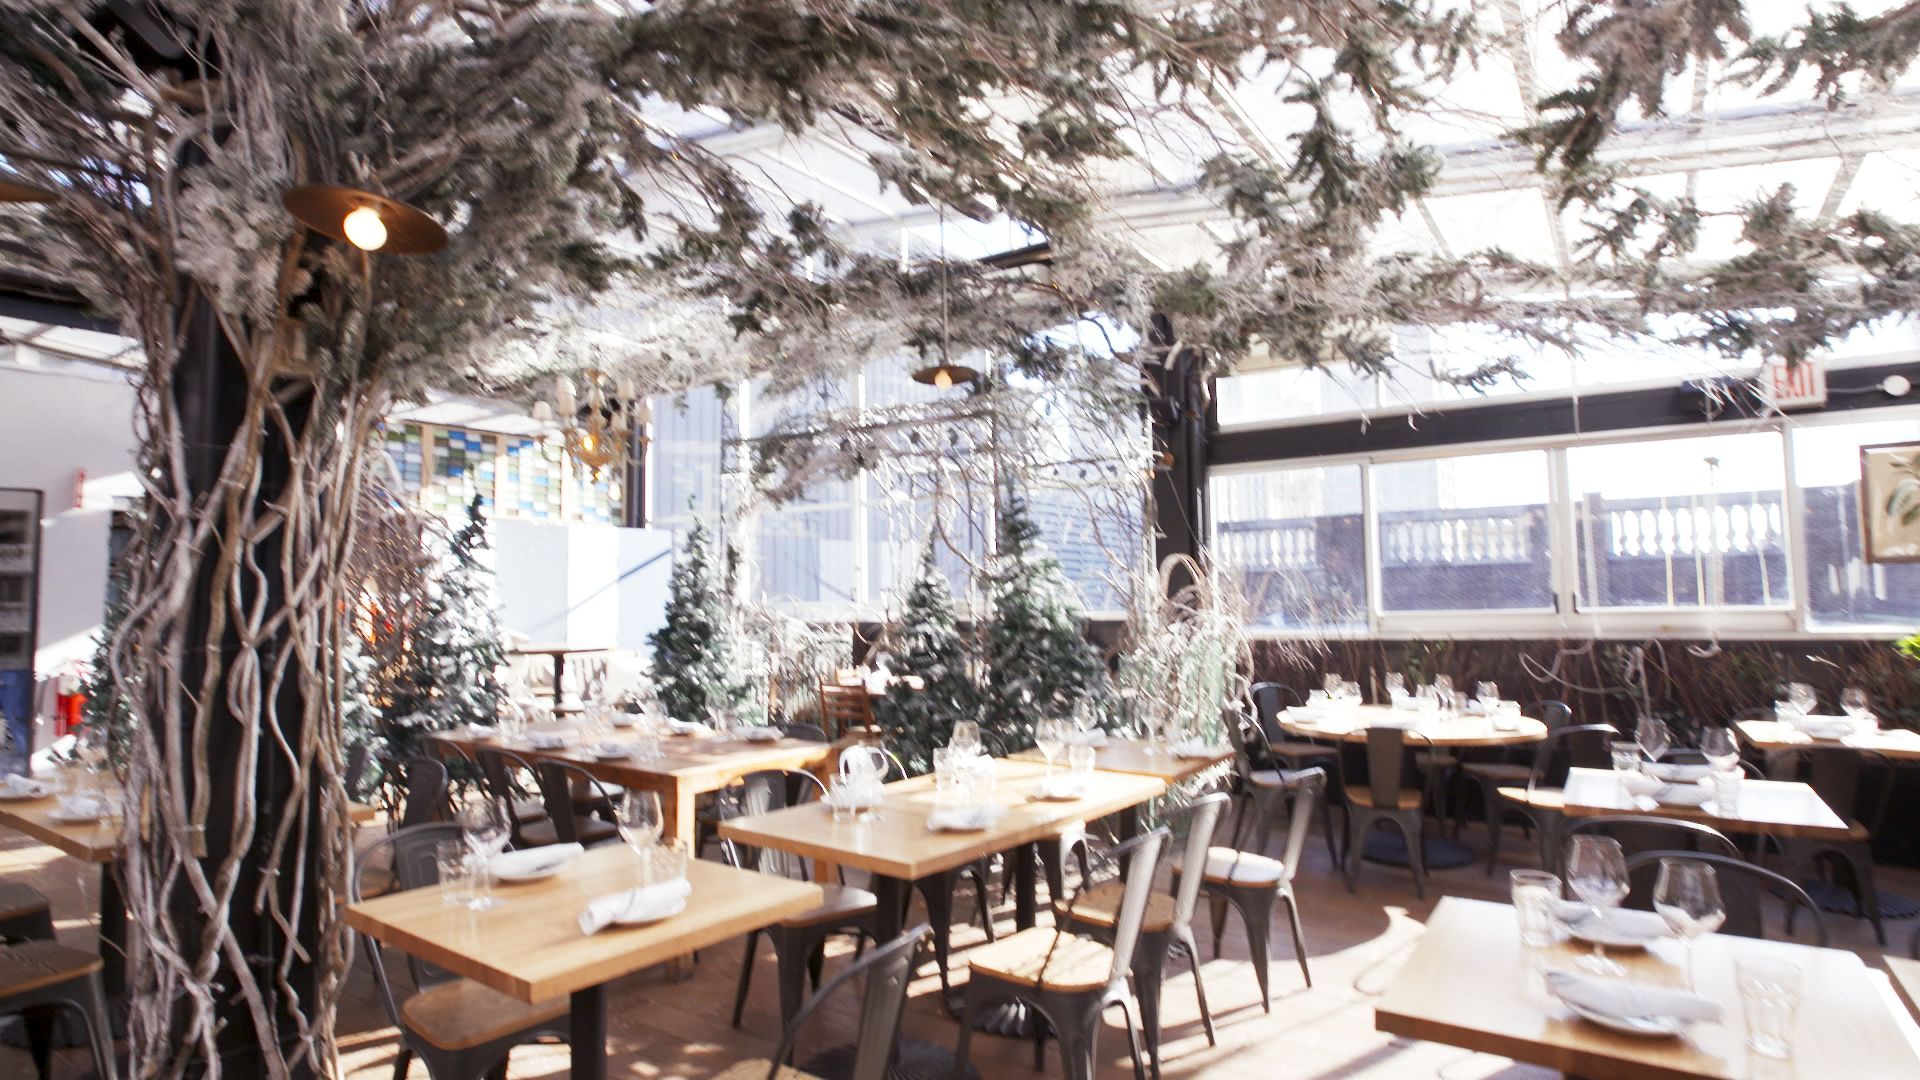 Serra Alpina by Birreria at Eataly Just Transformed Into a Winter Wonderland for The Holidays